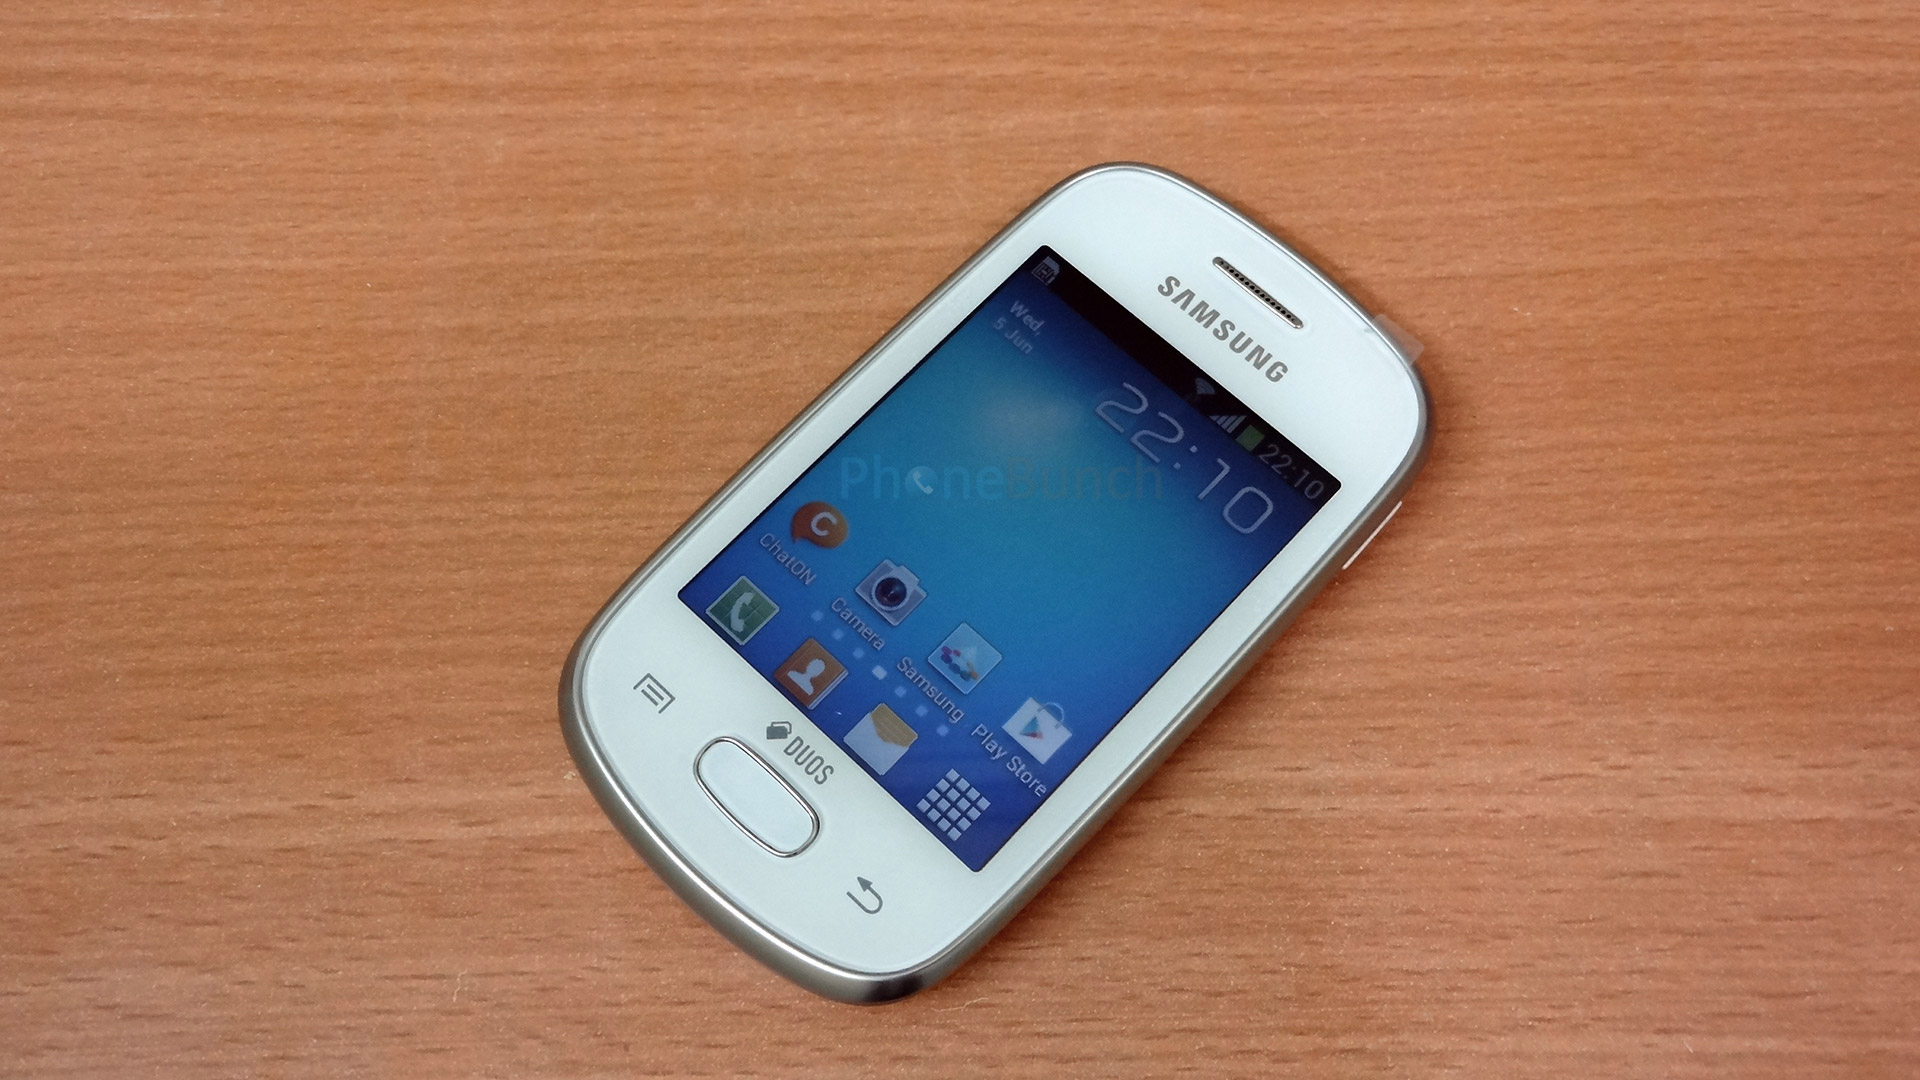 Samsung Galaxy Star S5282 Menu - Pics about space